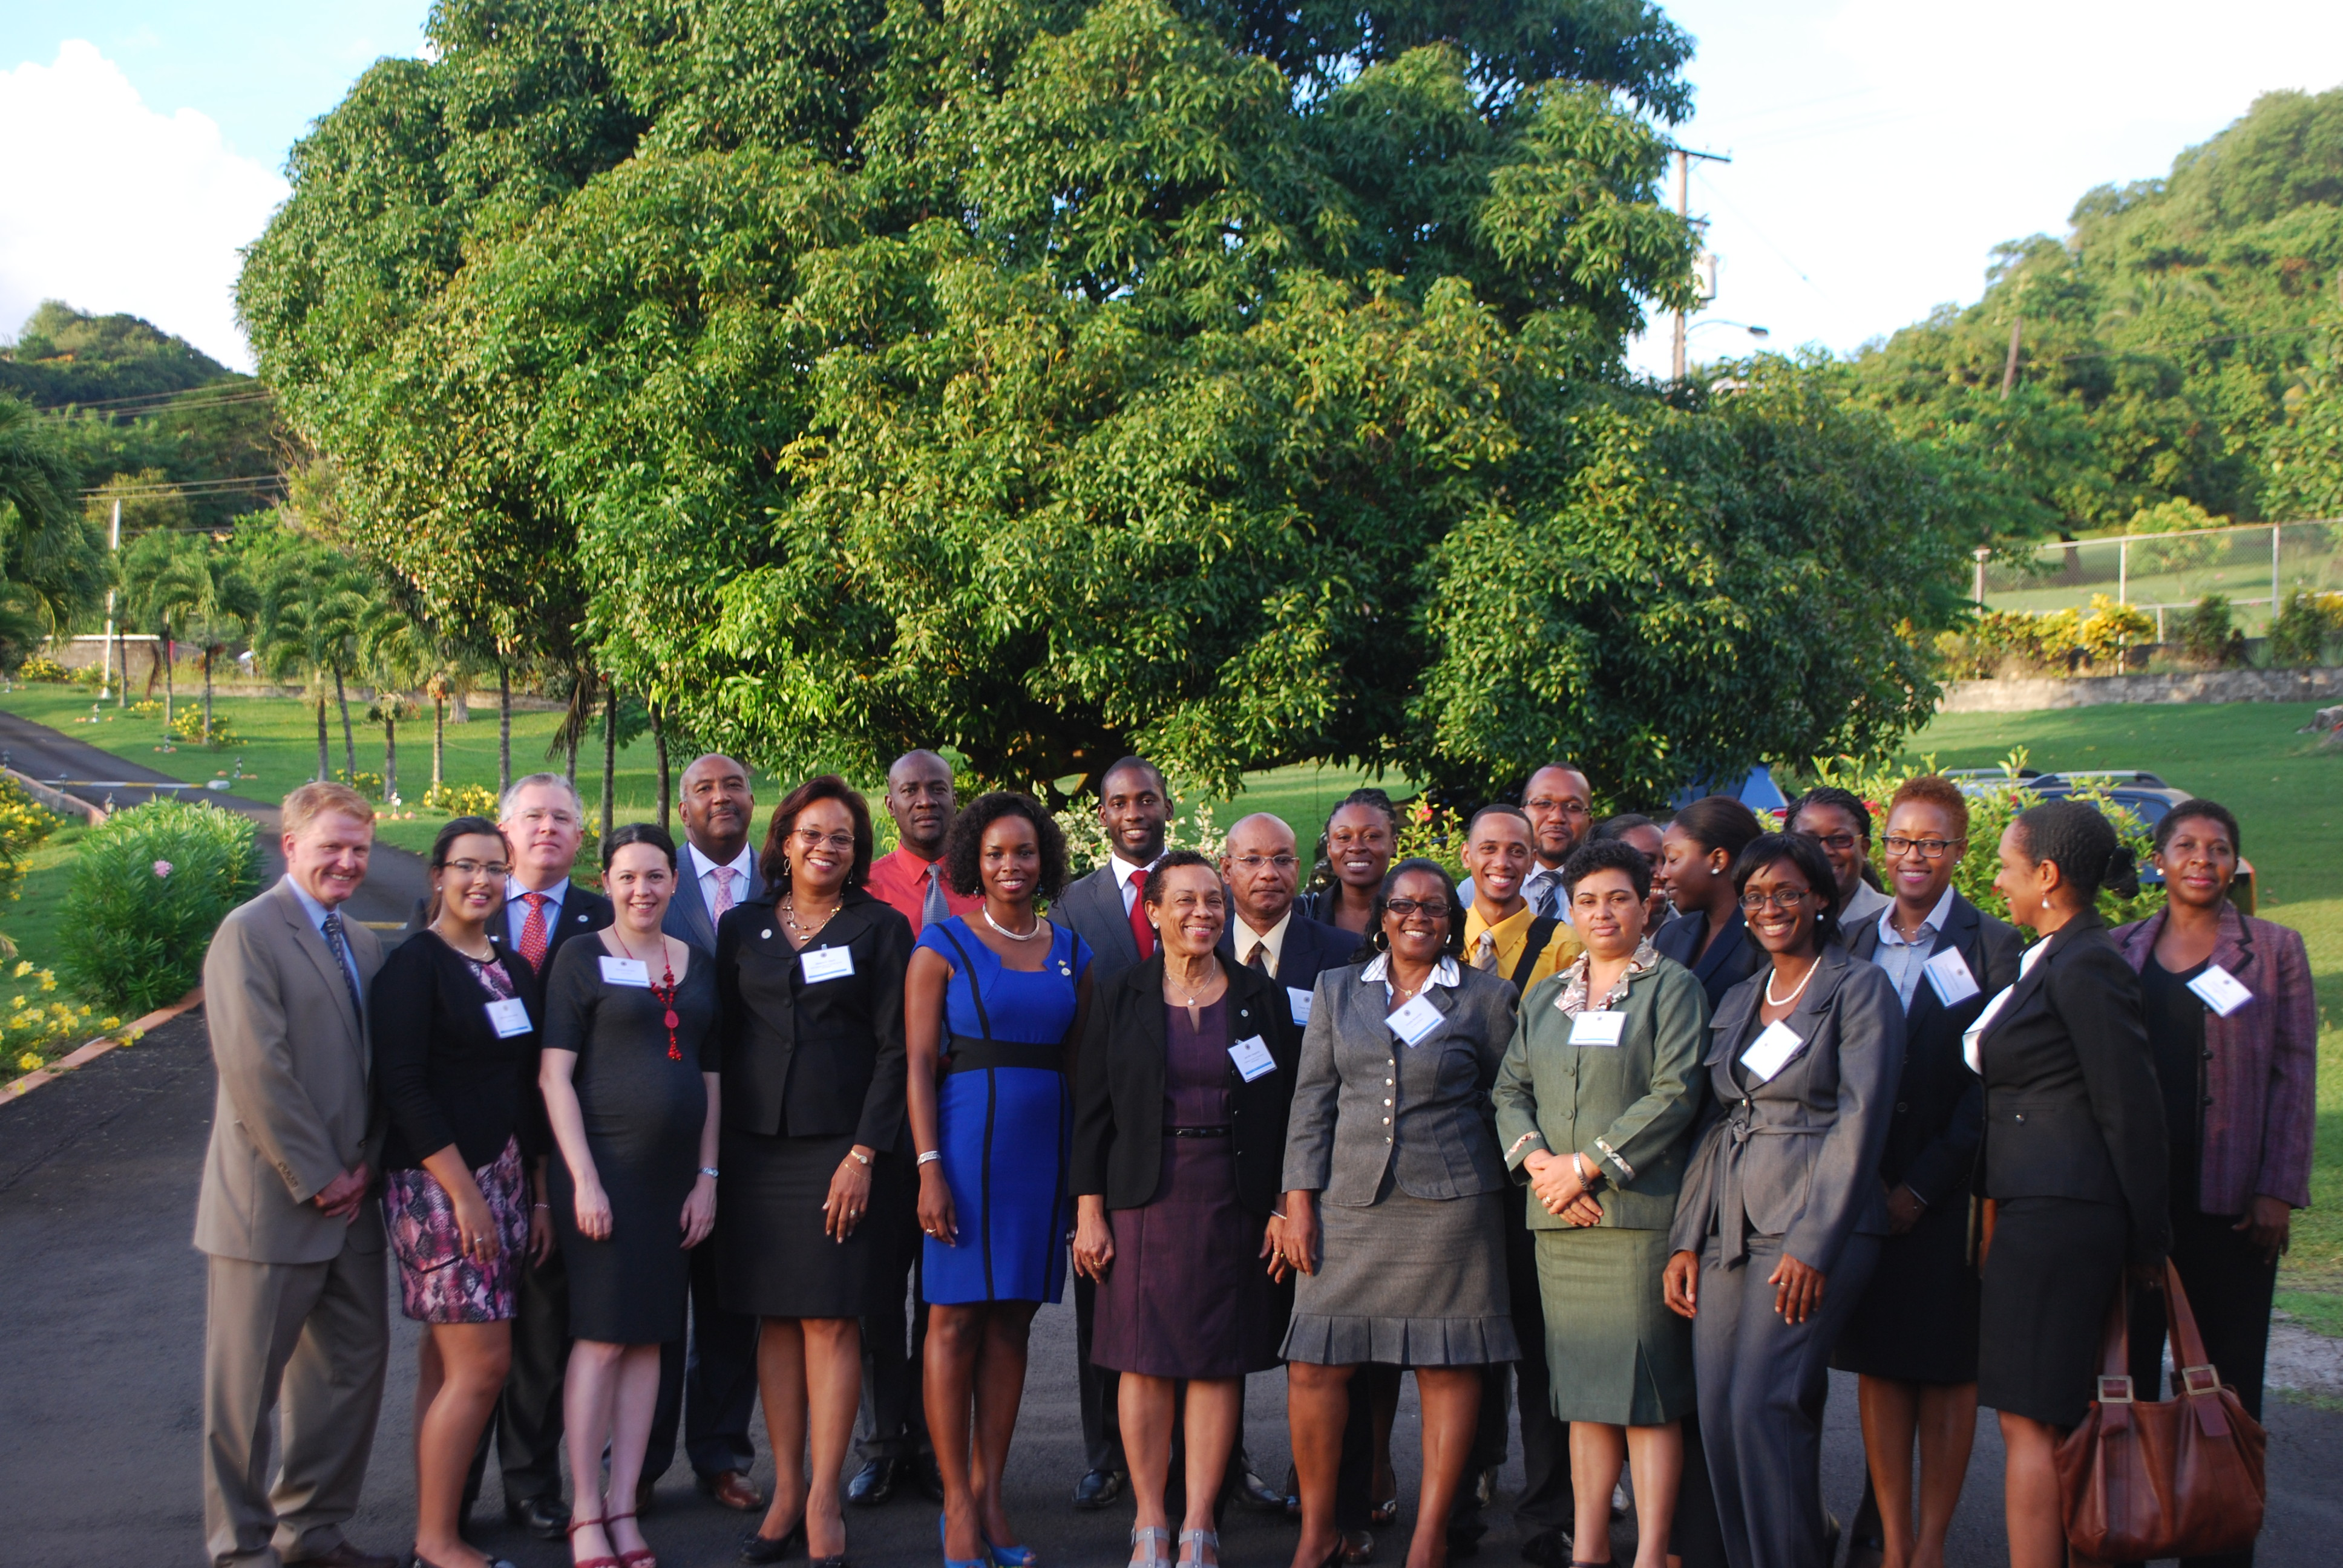 Participants in the OAS Regional Workshop on Civil Registries held in Villa, St. Vincent and the Grenadines in October 2013